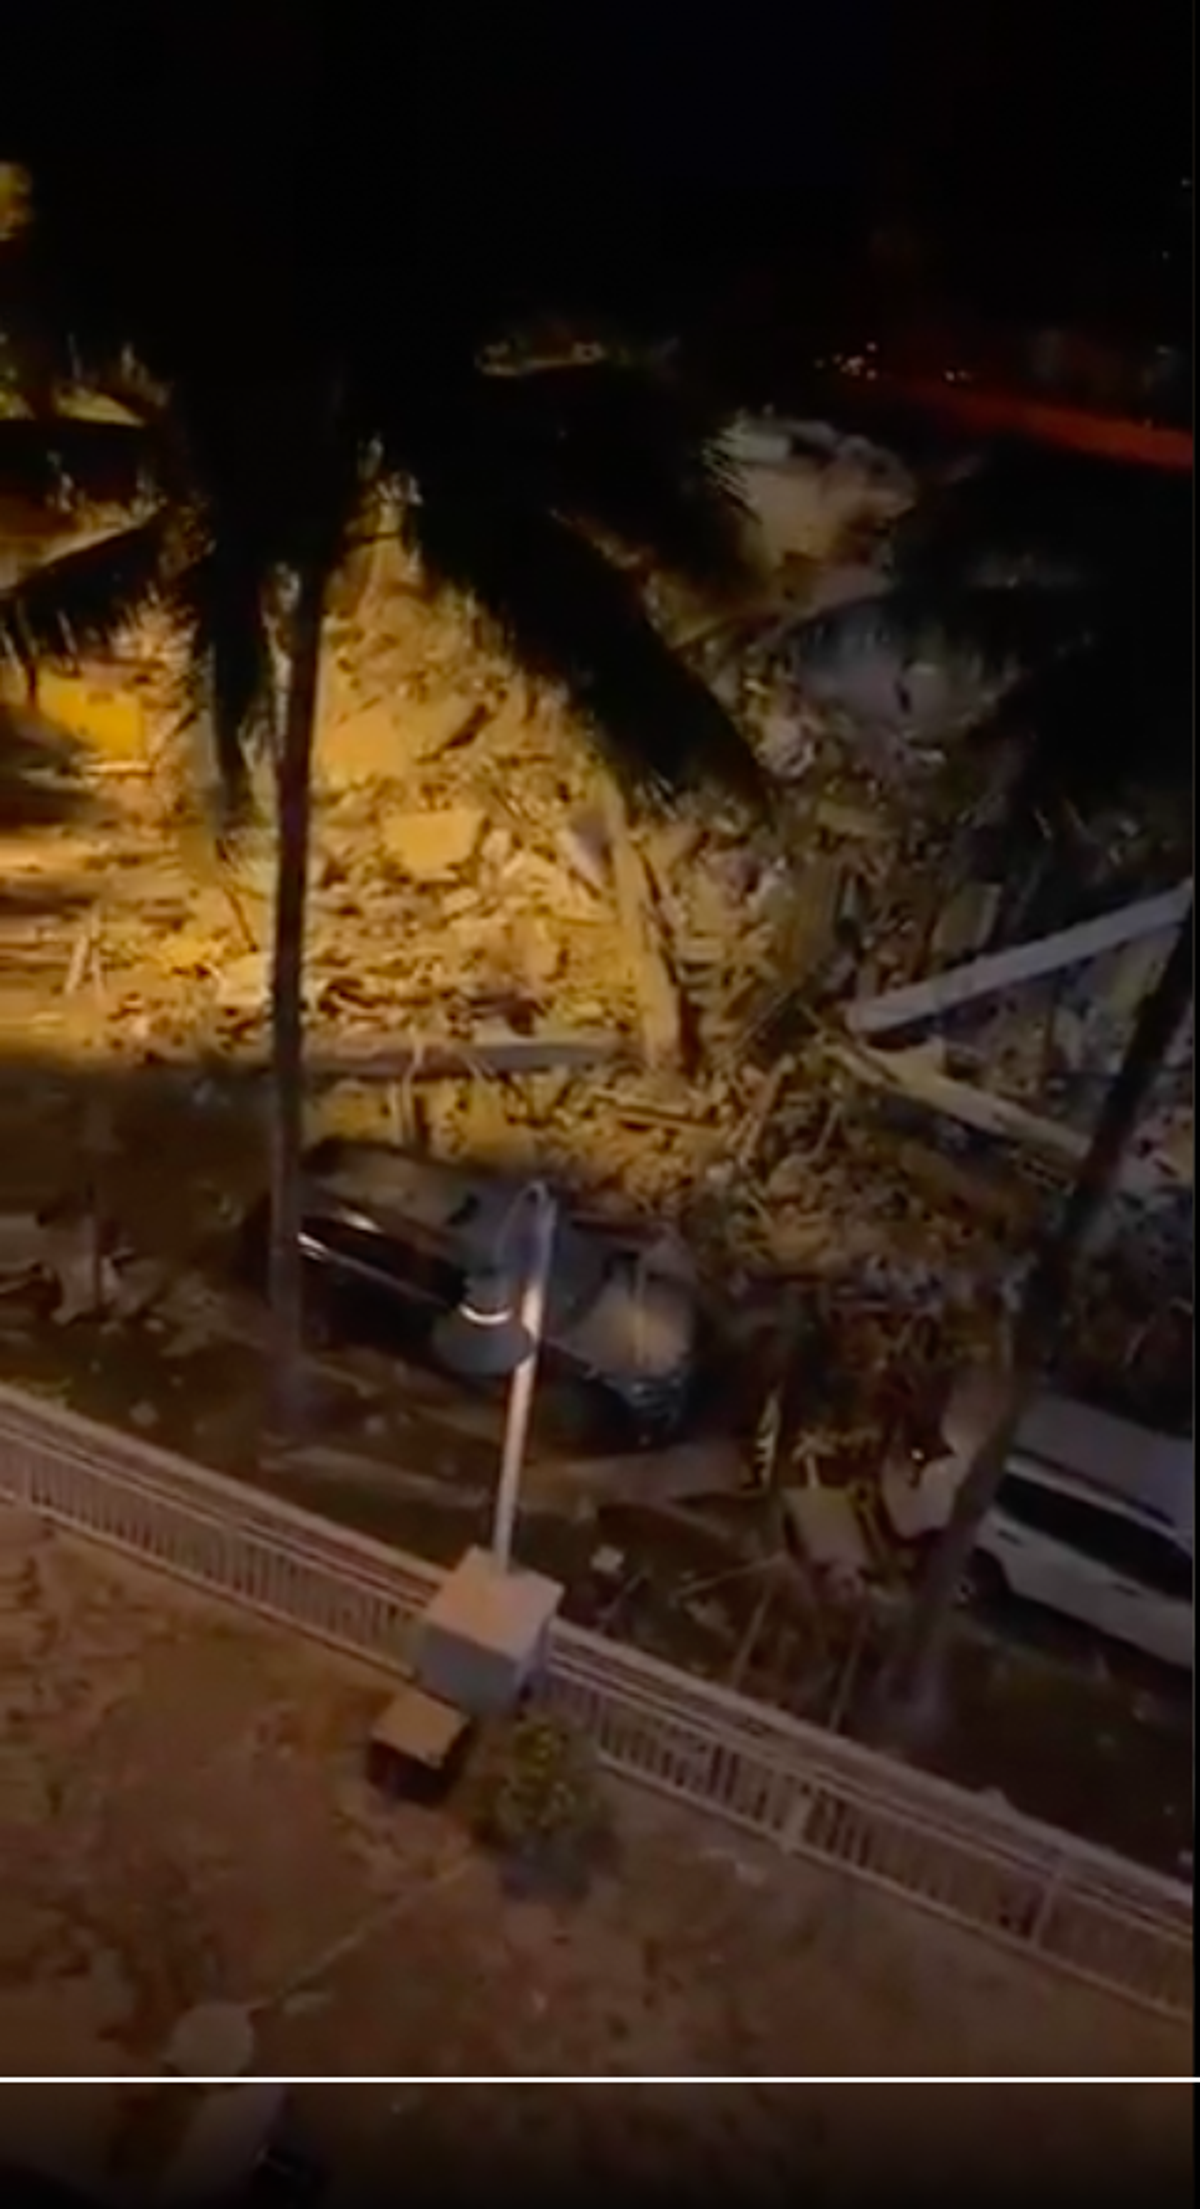 Rescue operation underway after building collapses in Florida - follow live